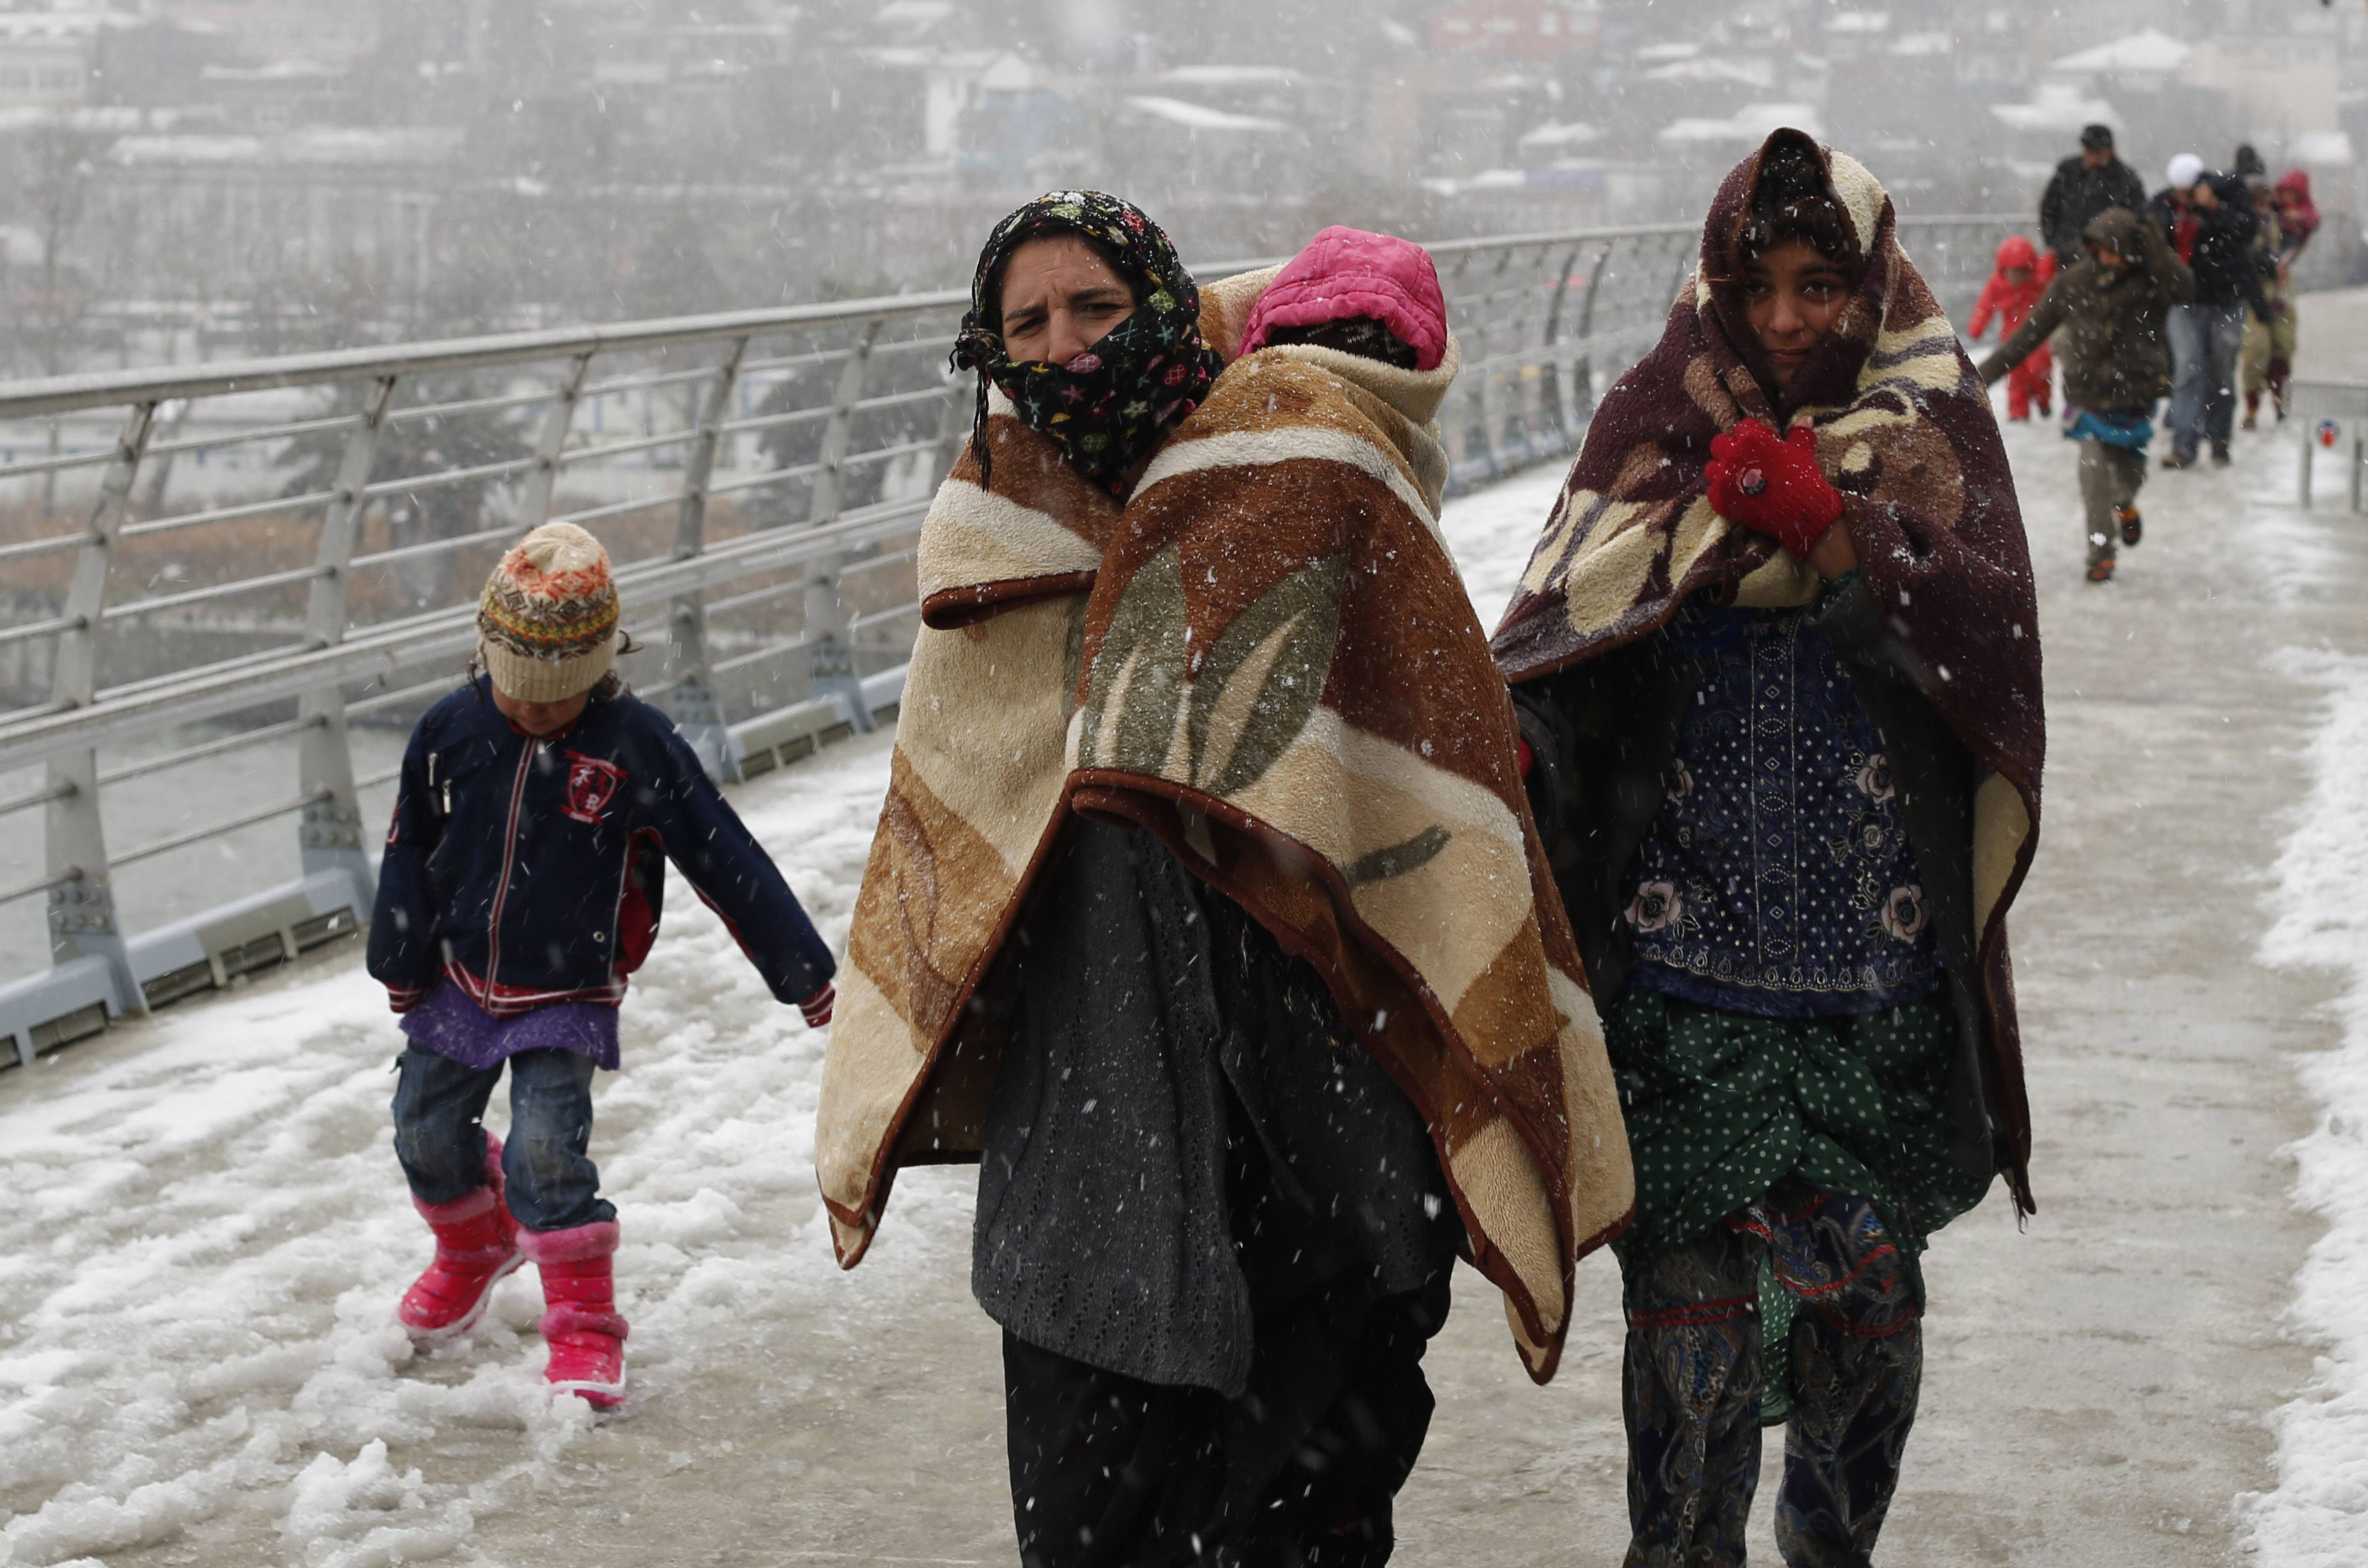 Syrian refugees brave the cold and snow as they walk to a metro station in Istanbul February 11, 2015, at the start of a day's begging.